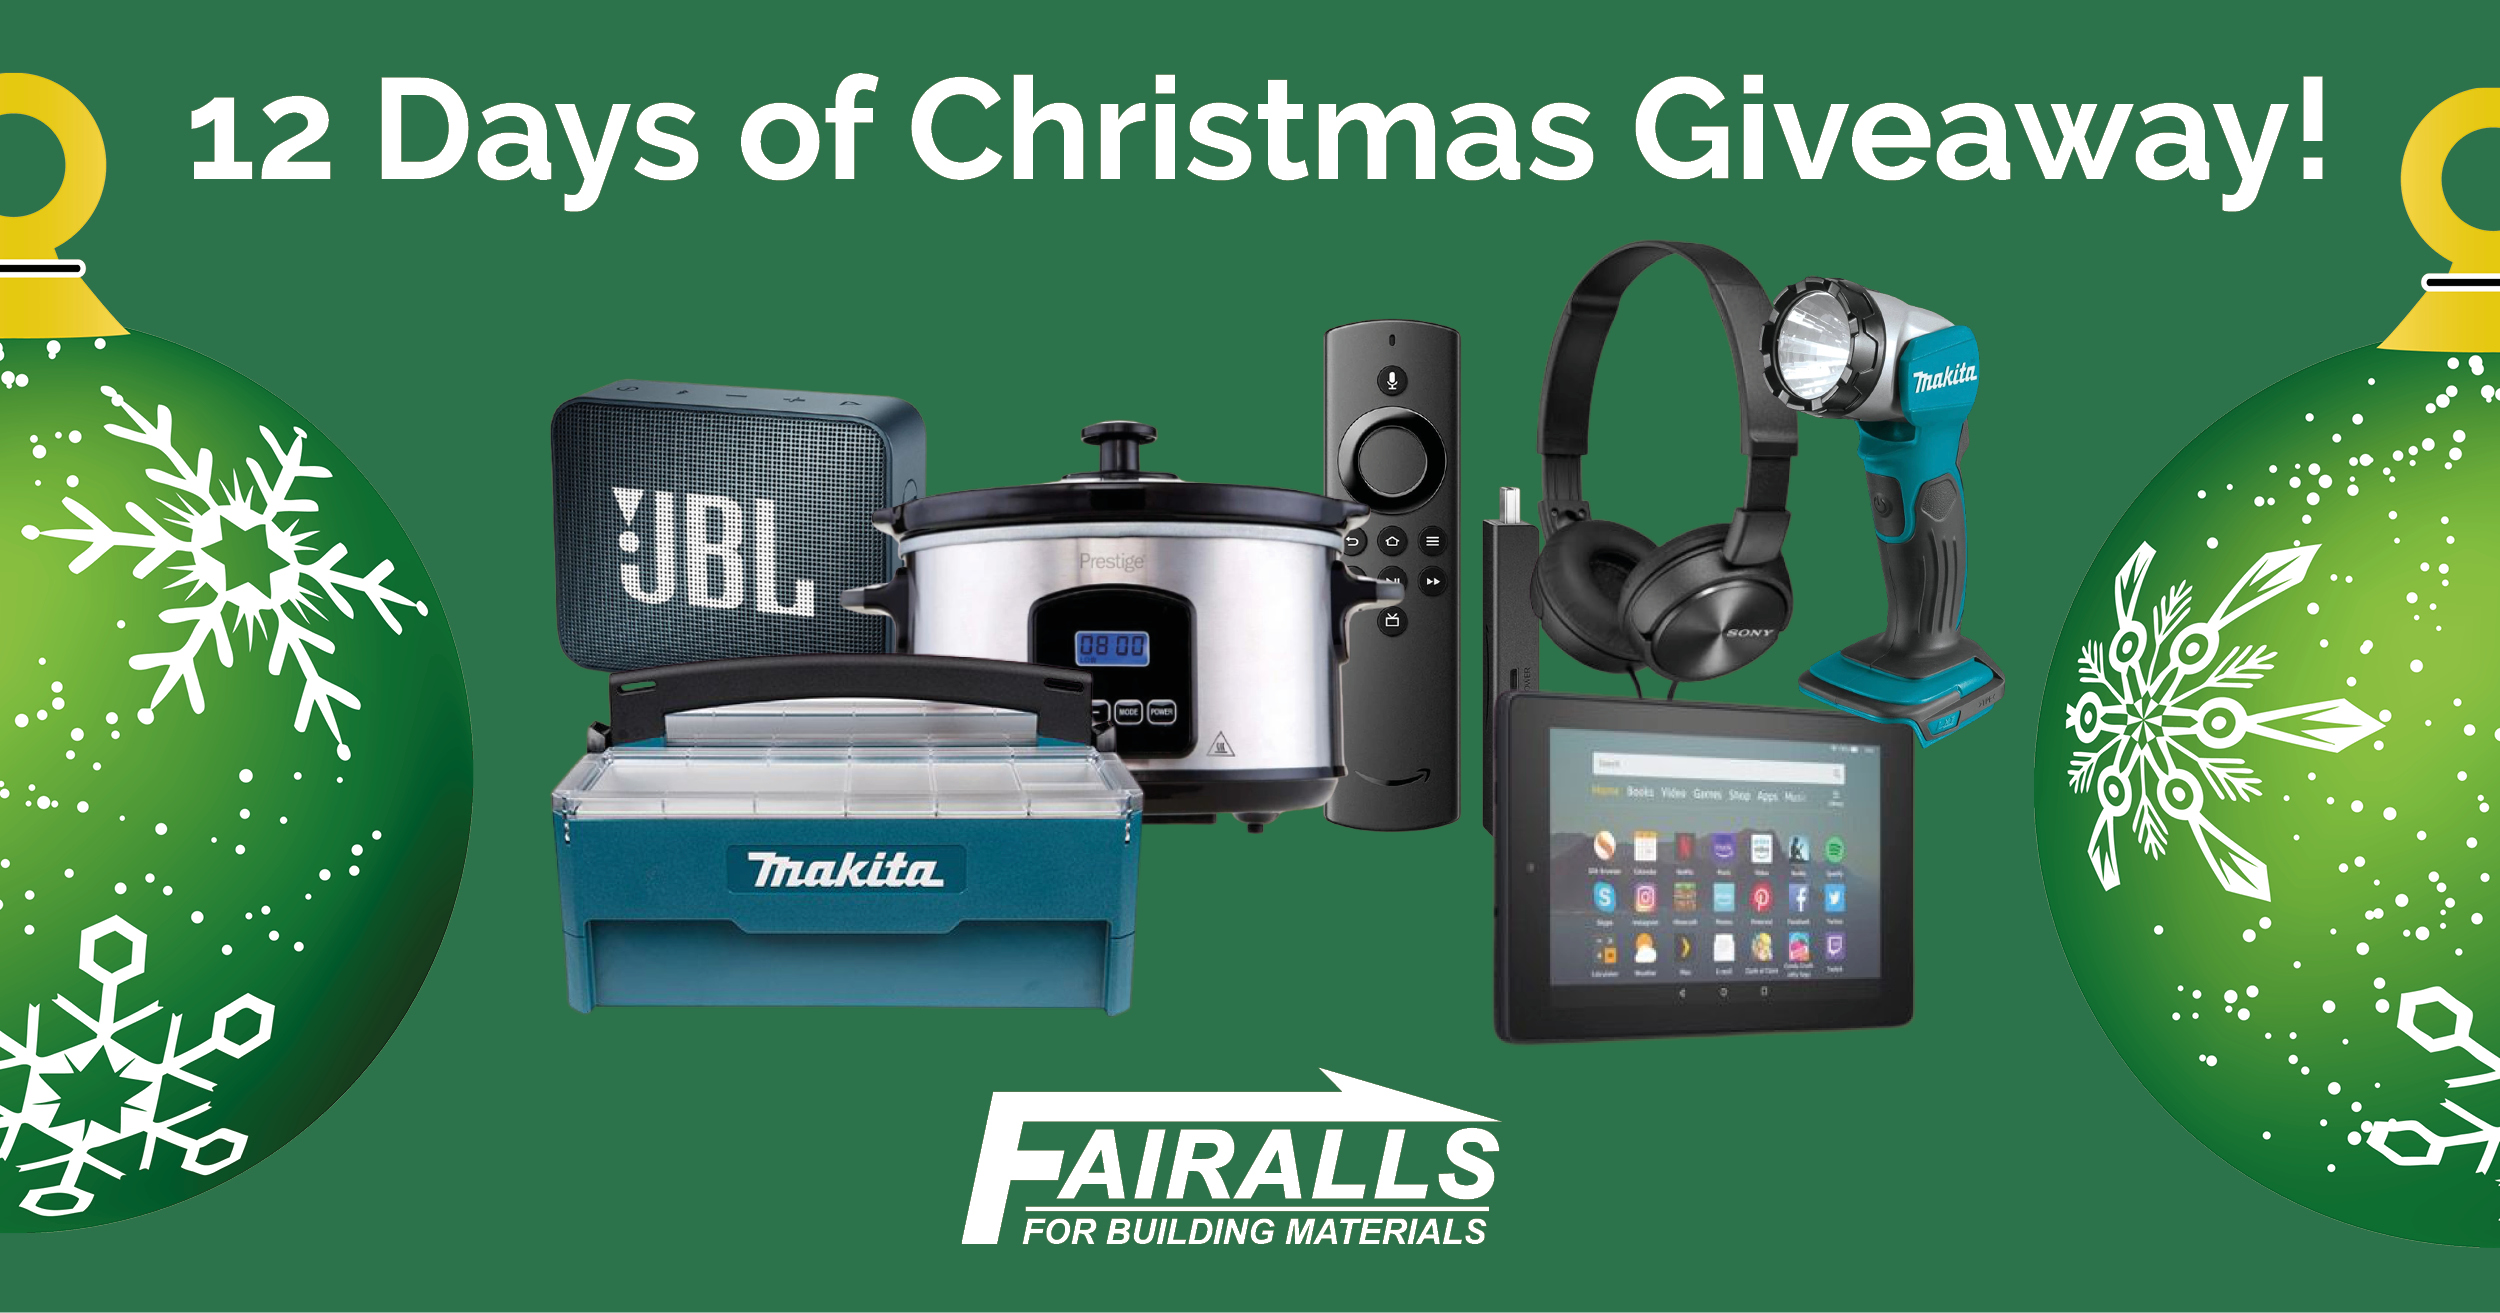 Our 12 days of Christmas giveaway is back! You could win some great prizes including a Fire 7 tablet, an Echo Dot & much more!